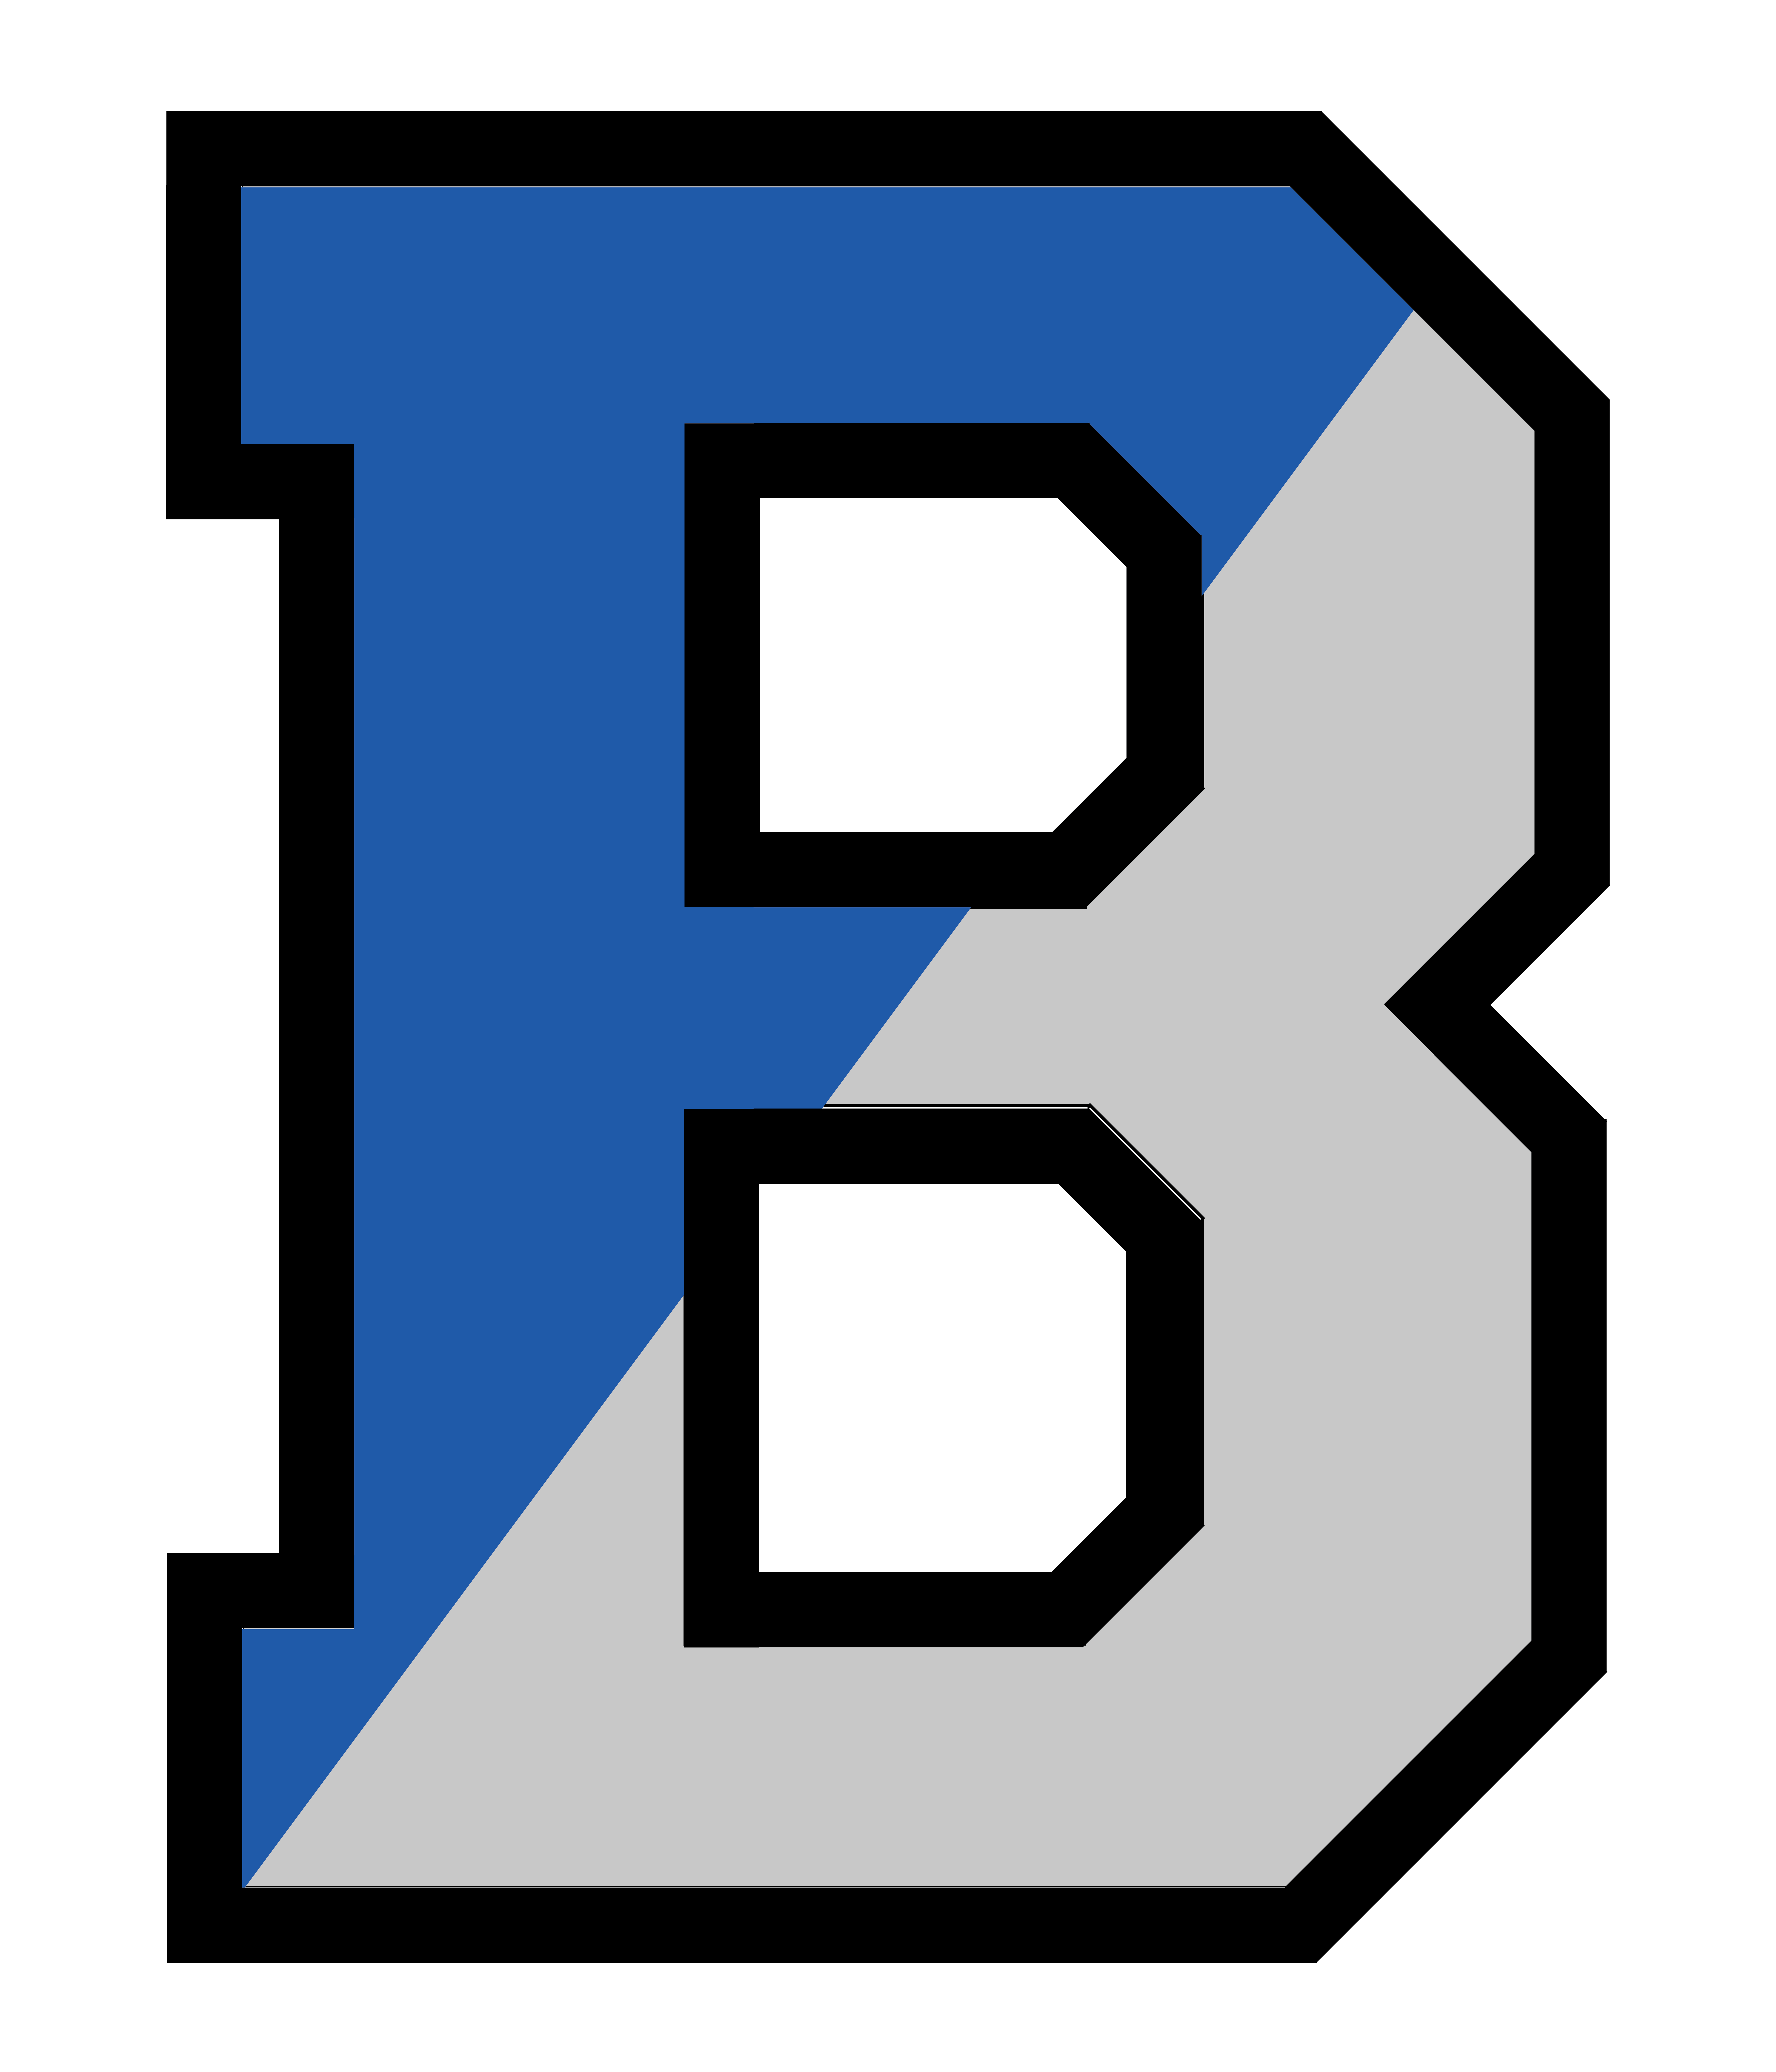 Bensalem Township School District logo - A large B with blue on the left side and gray on the right side.